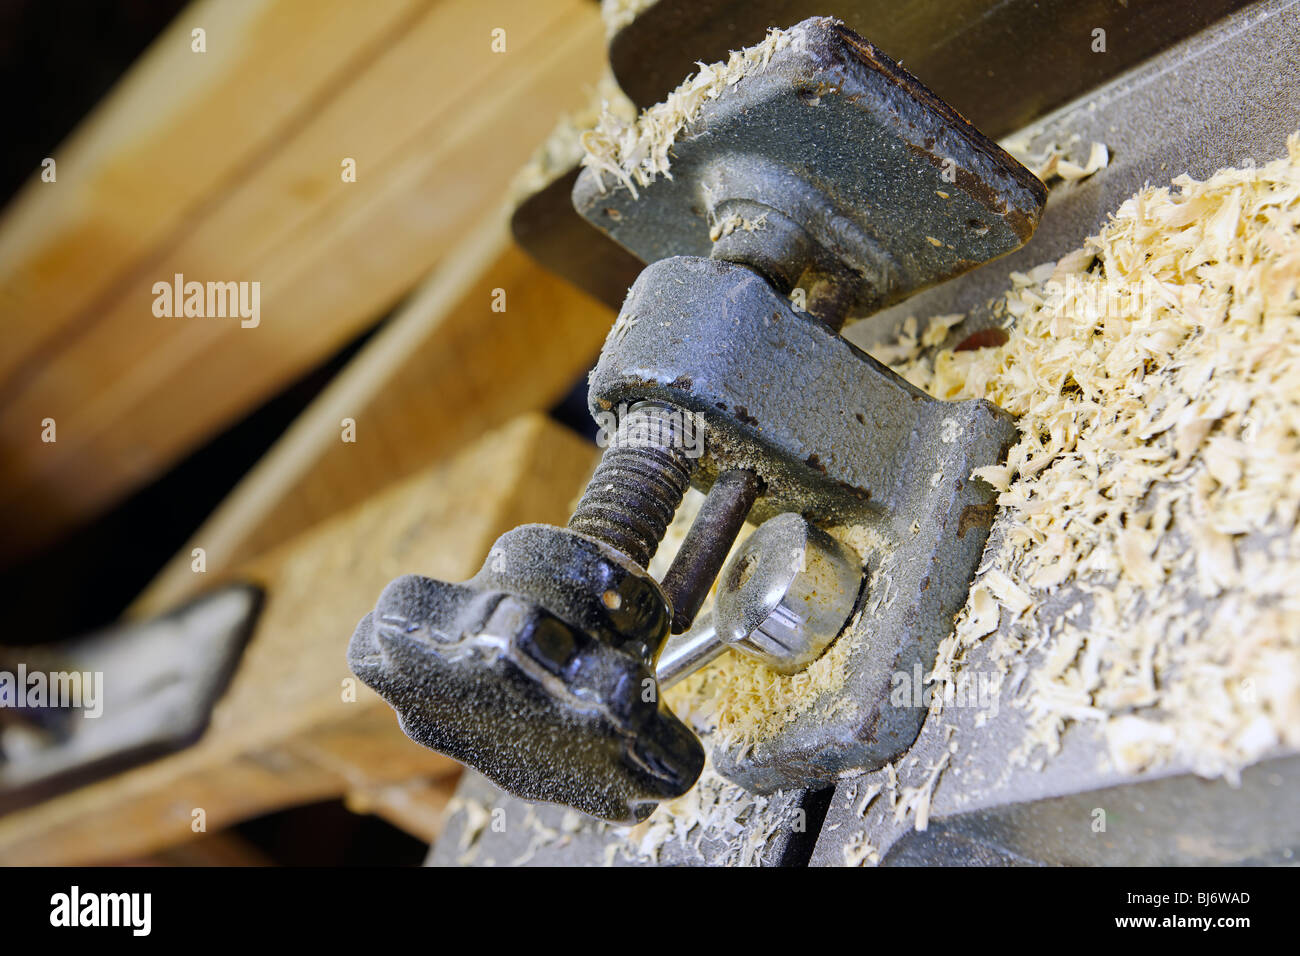 The Carpenter's Workshop - Clamp - Stock Image